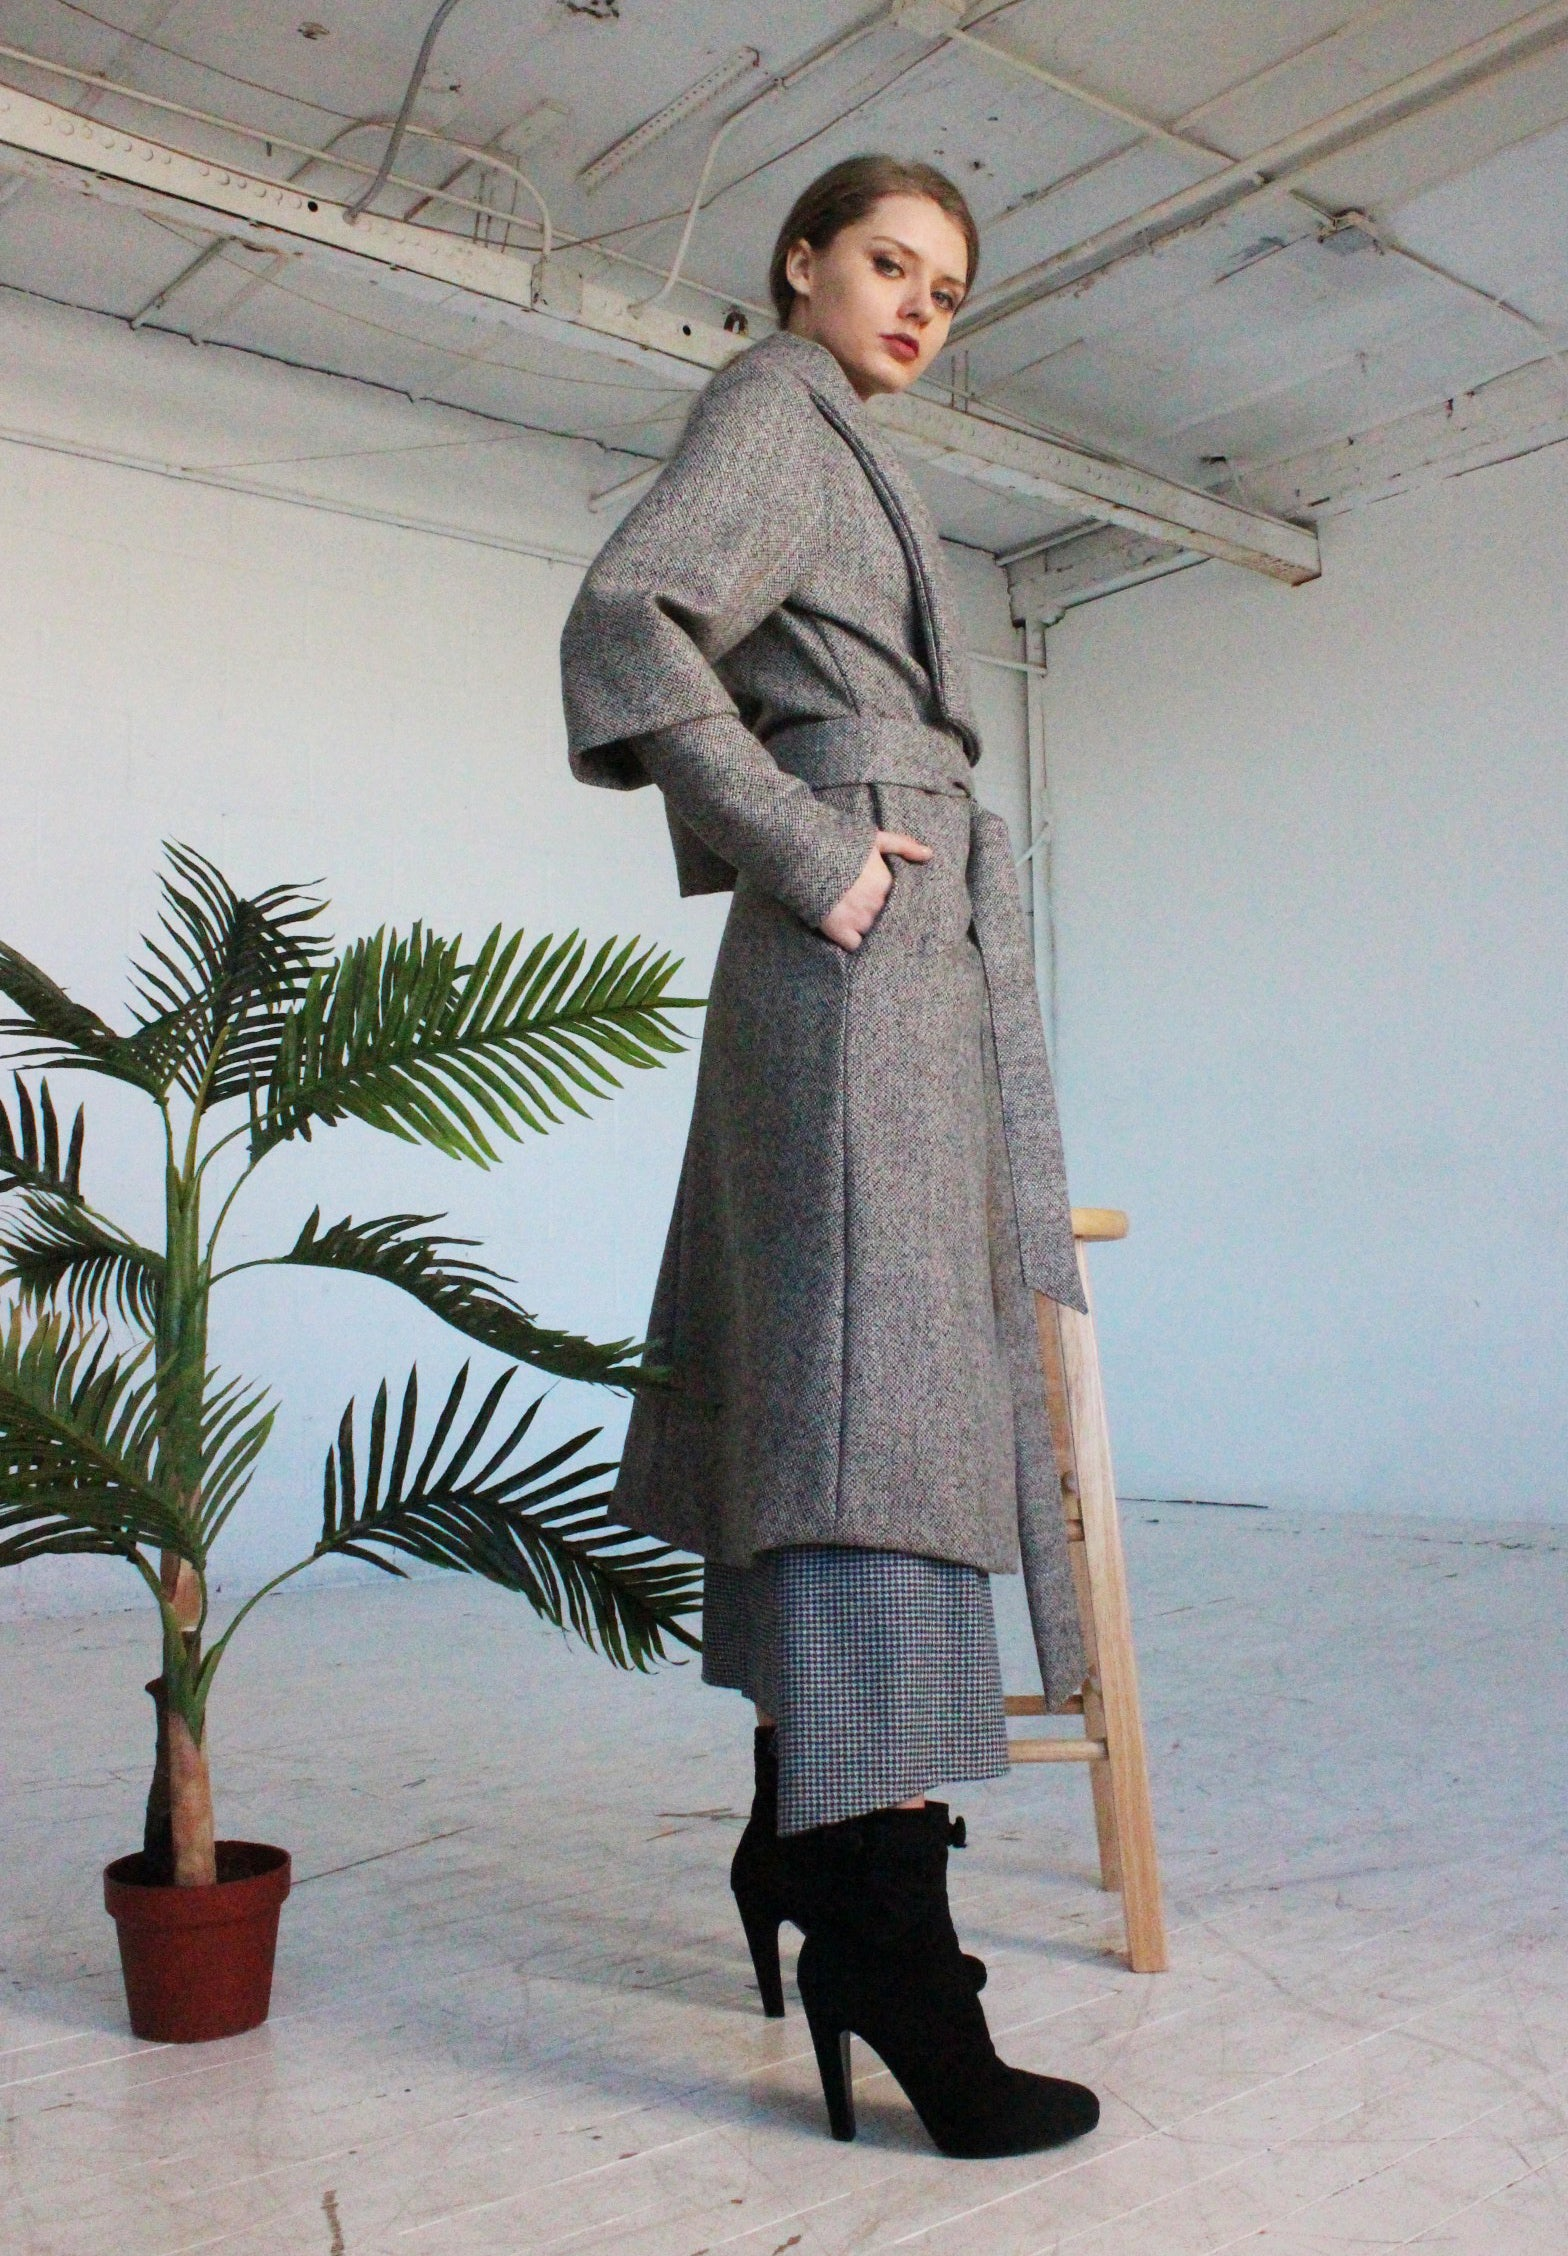 Ying Cai _ AW 21 Look 3 - 6